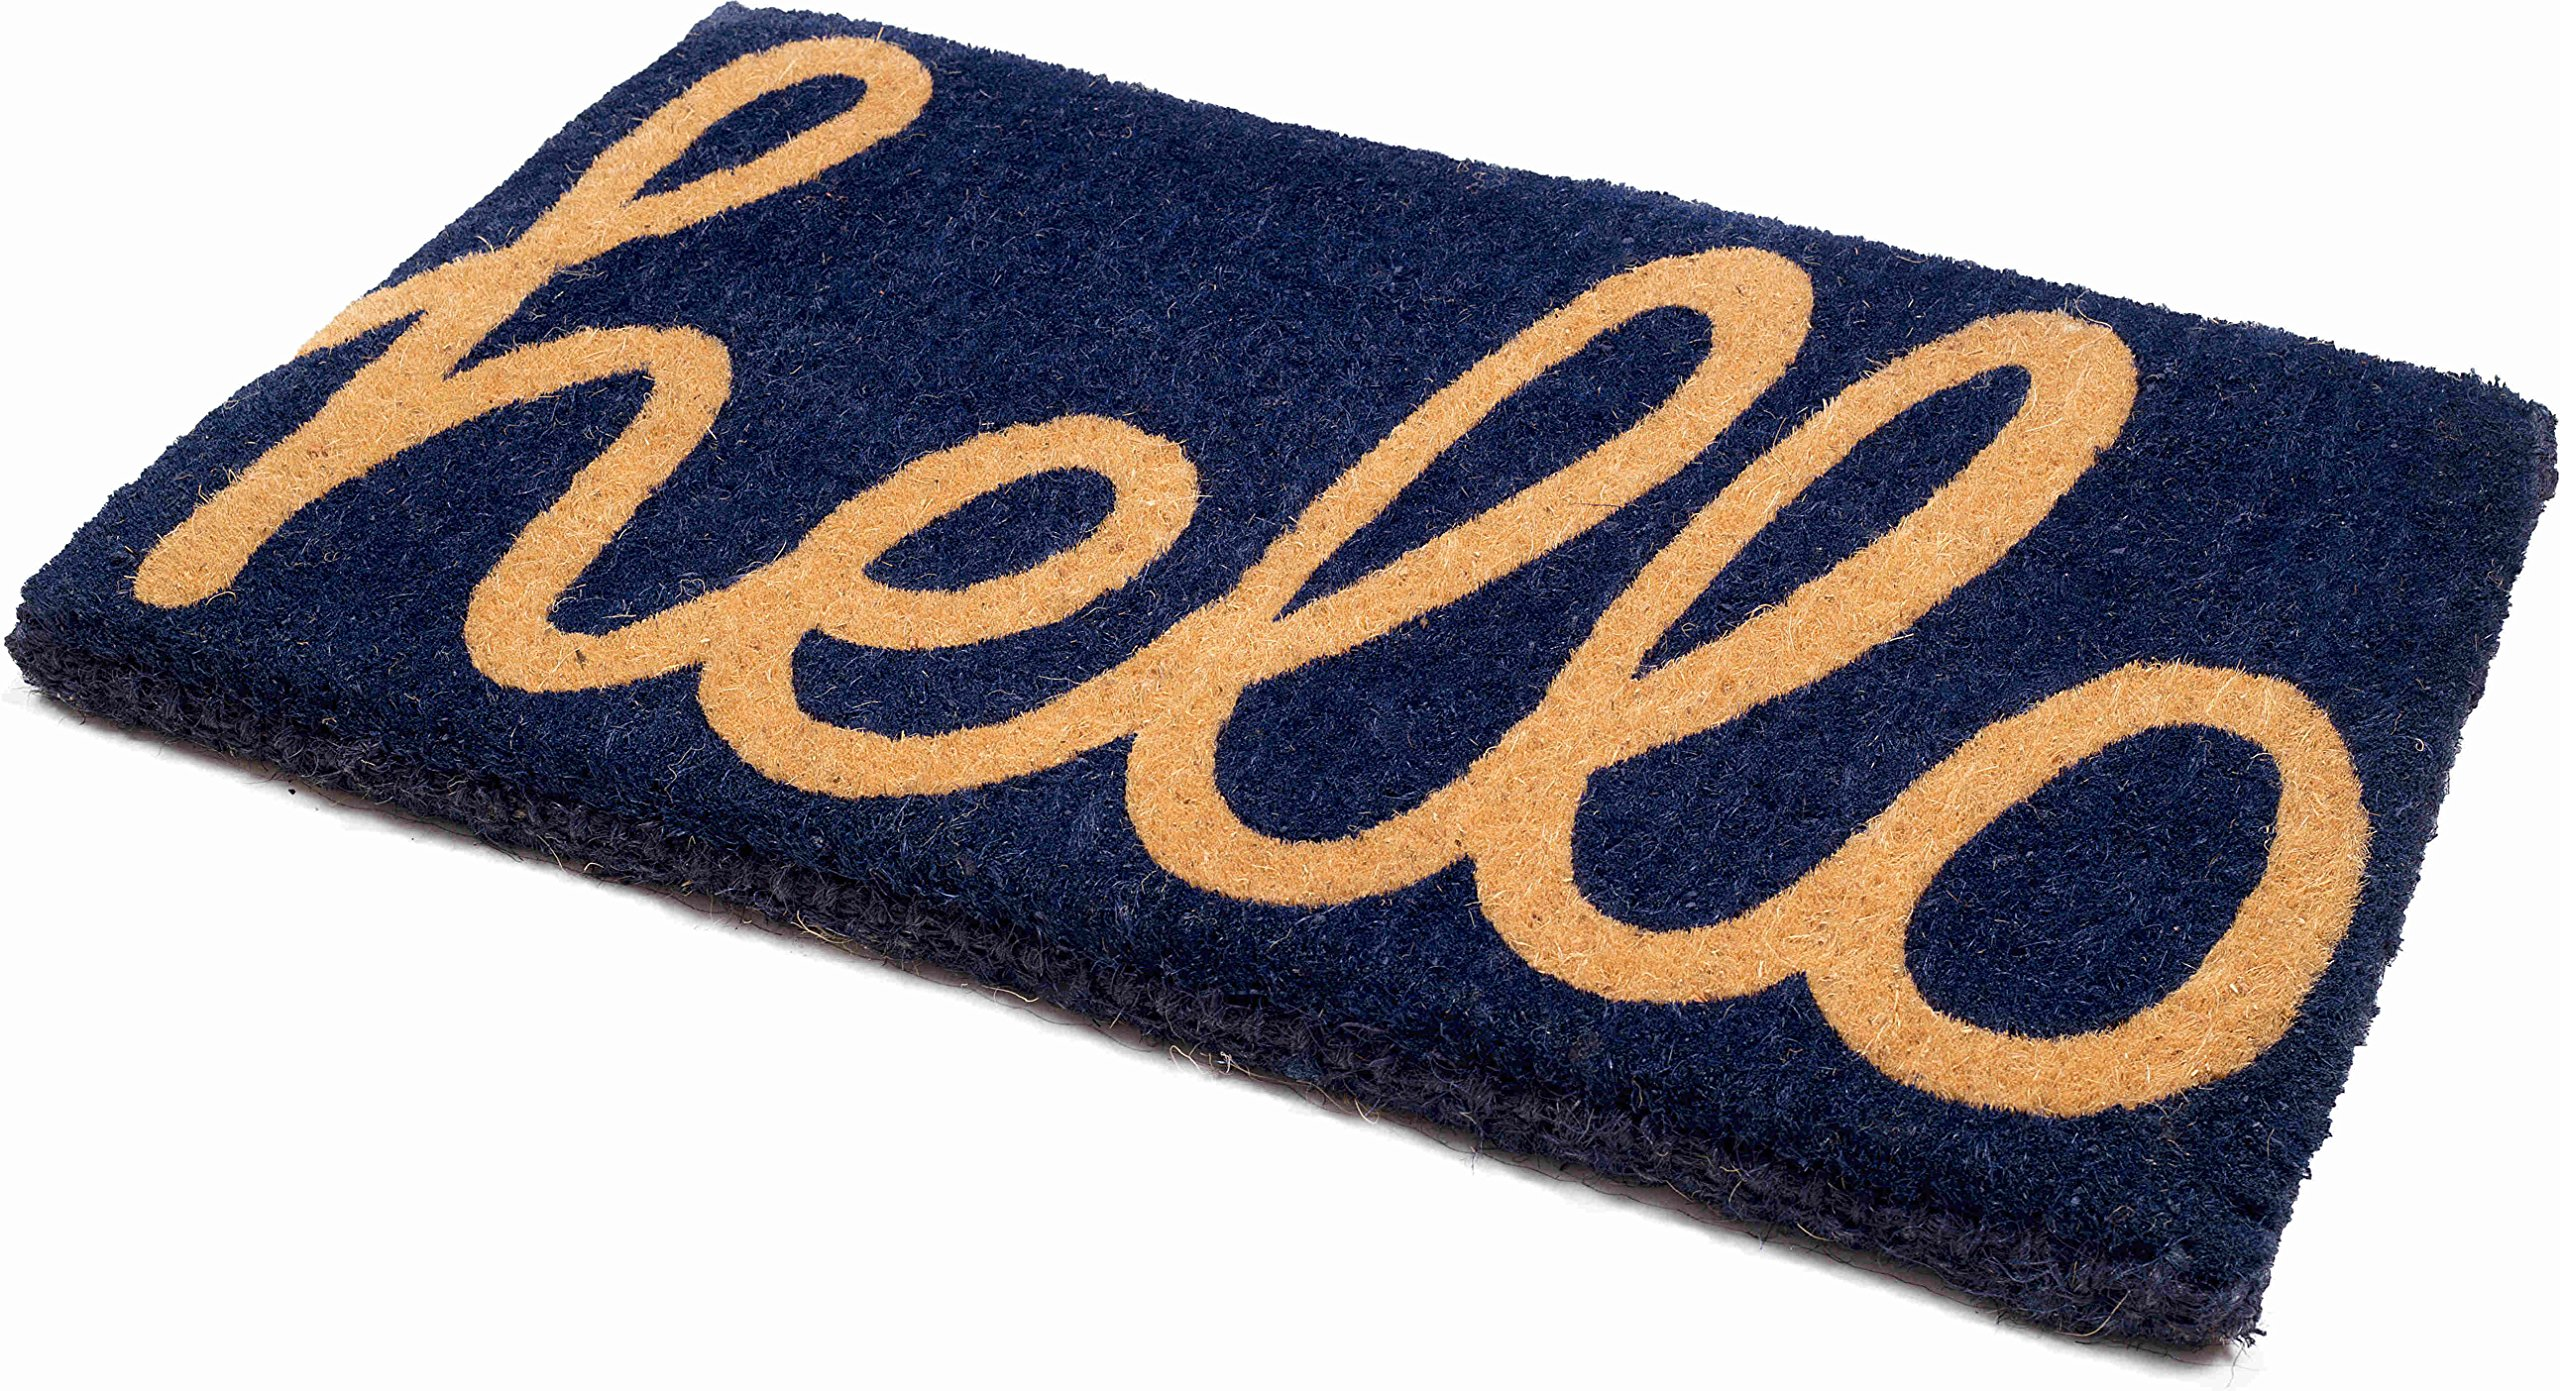 Handwoven, Extra Thick Doormat | Entryway Door mat For Patio, Front Door | Decorative All-Season | Cursive Hello - Dark Blue | 18'' x 30'' x 1.60''